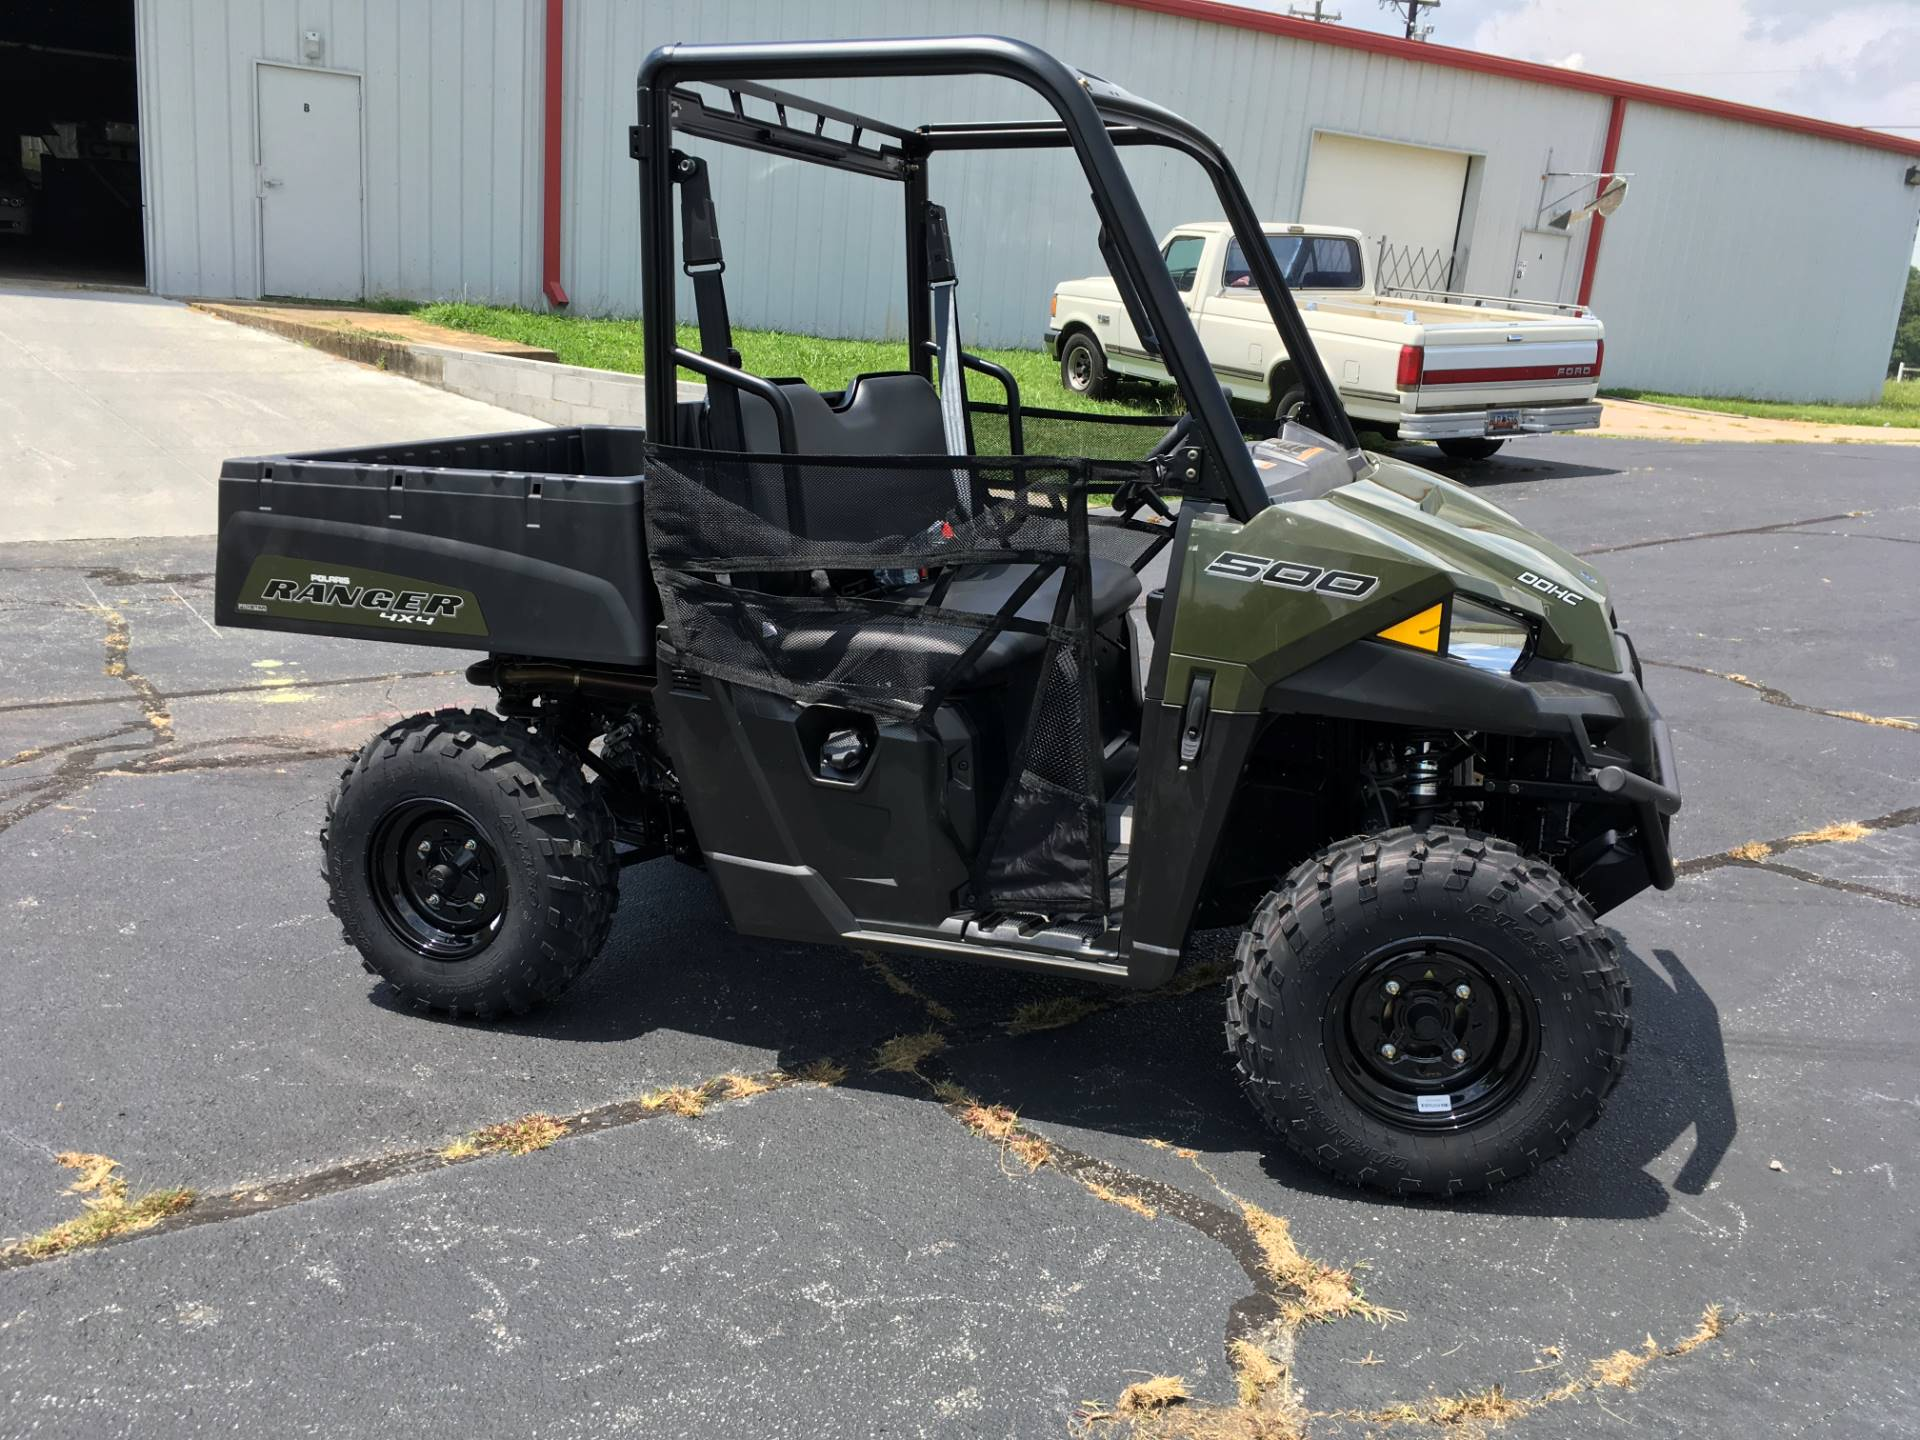 2019 Polaris Ranger 500 in Greer, South Carolina - Photo 2